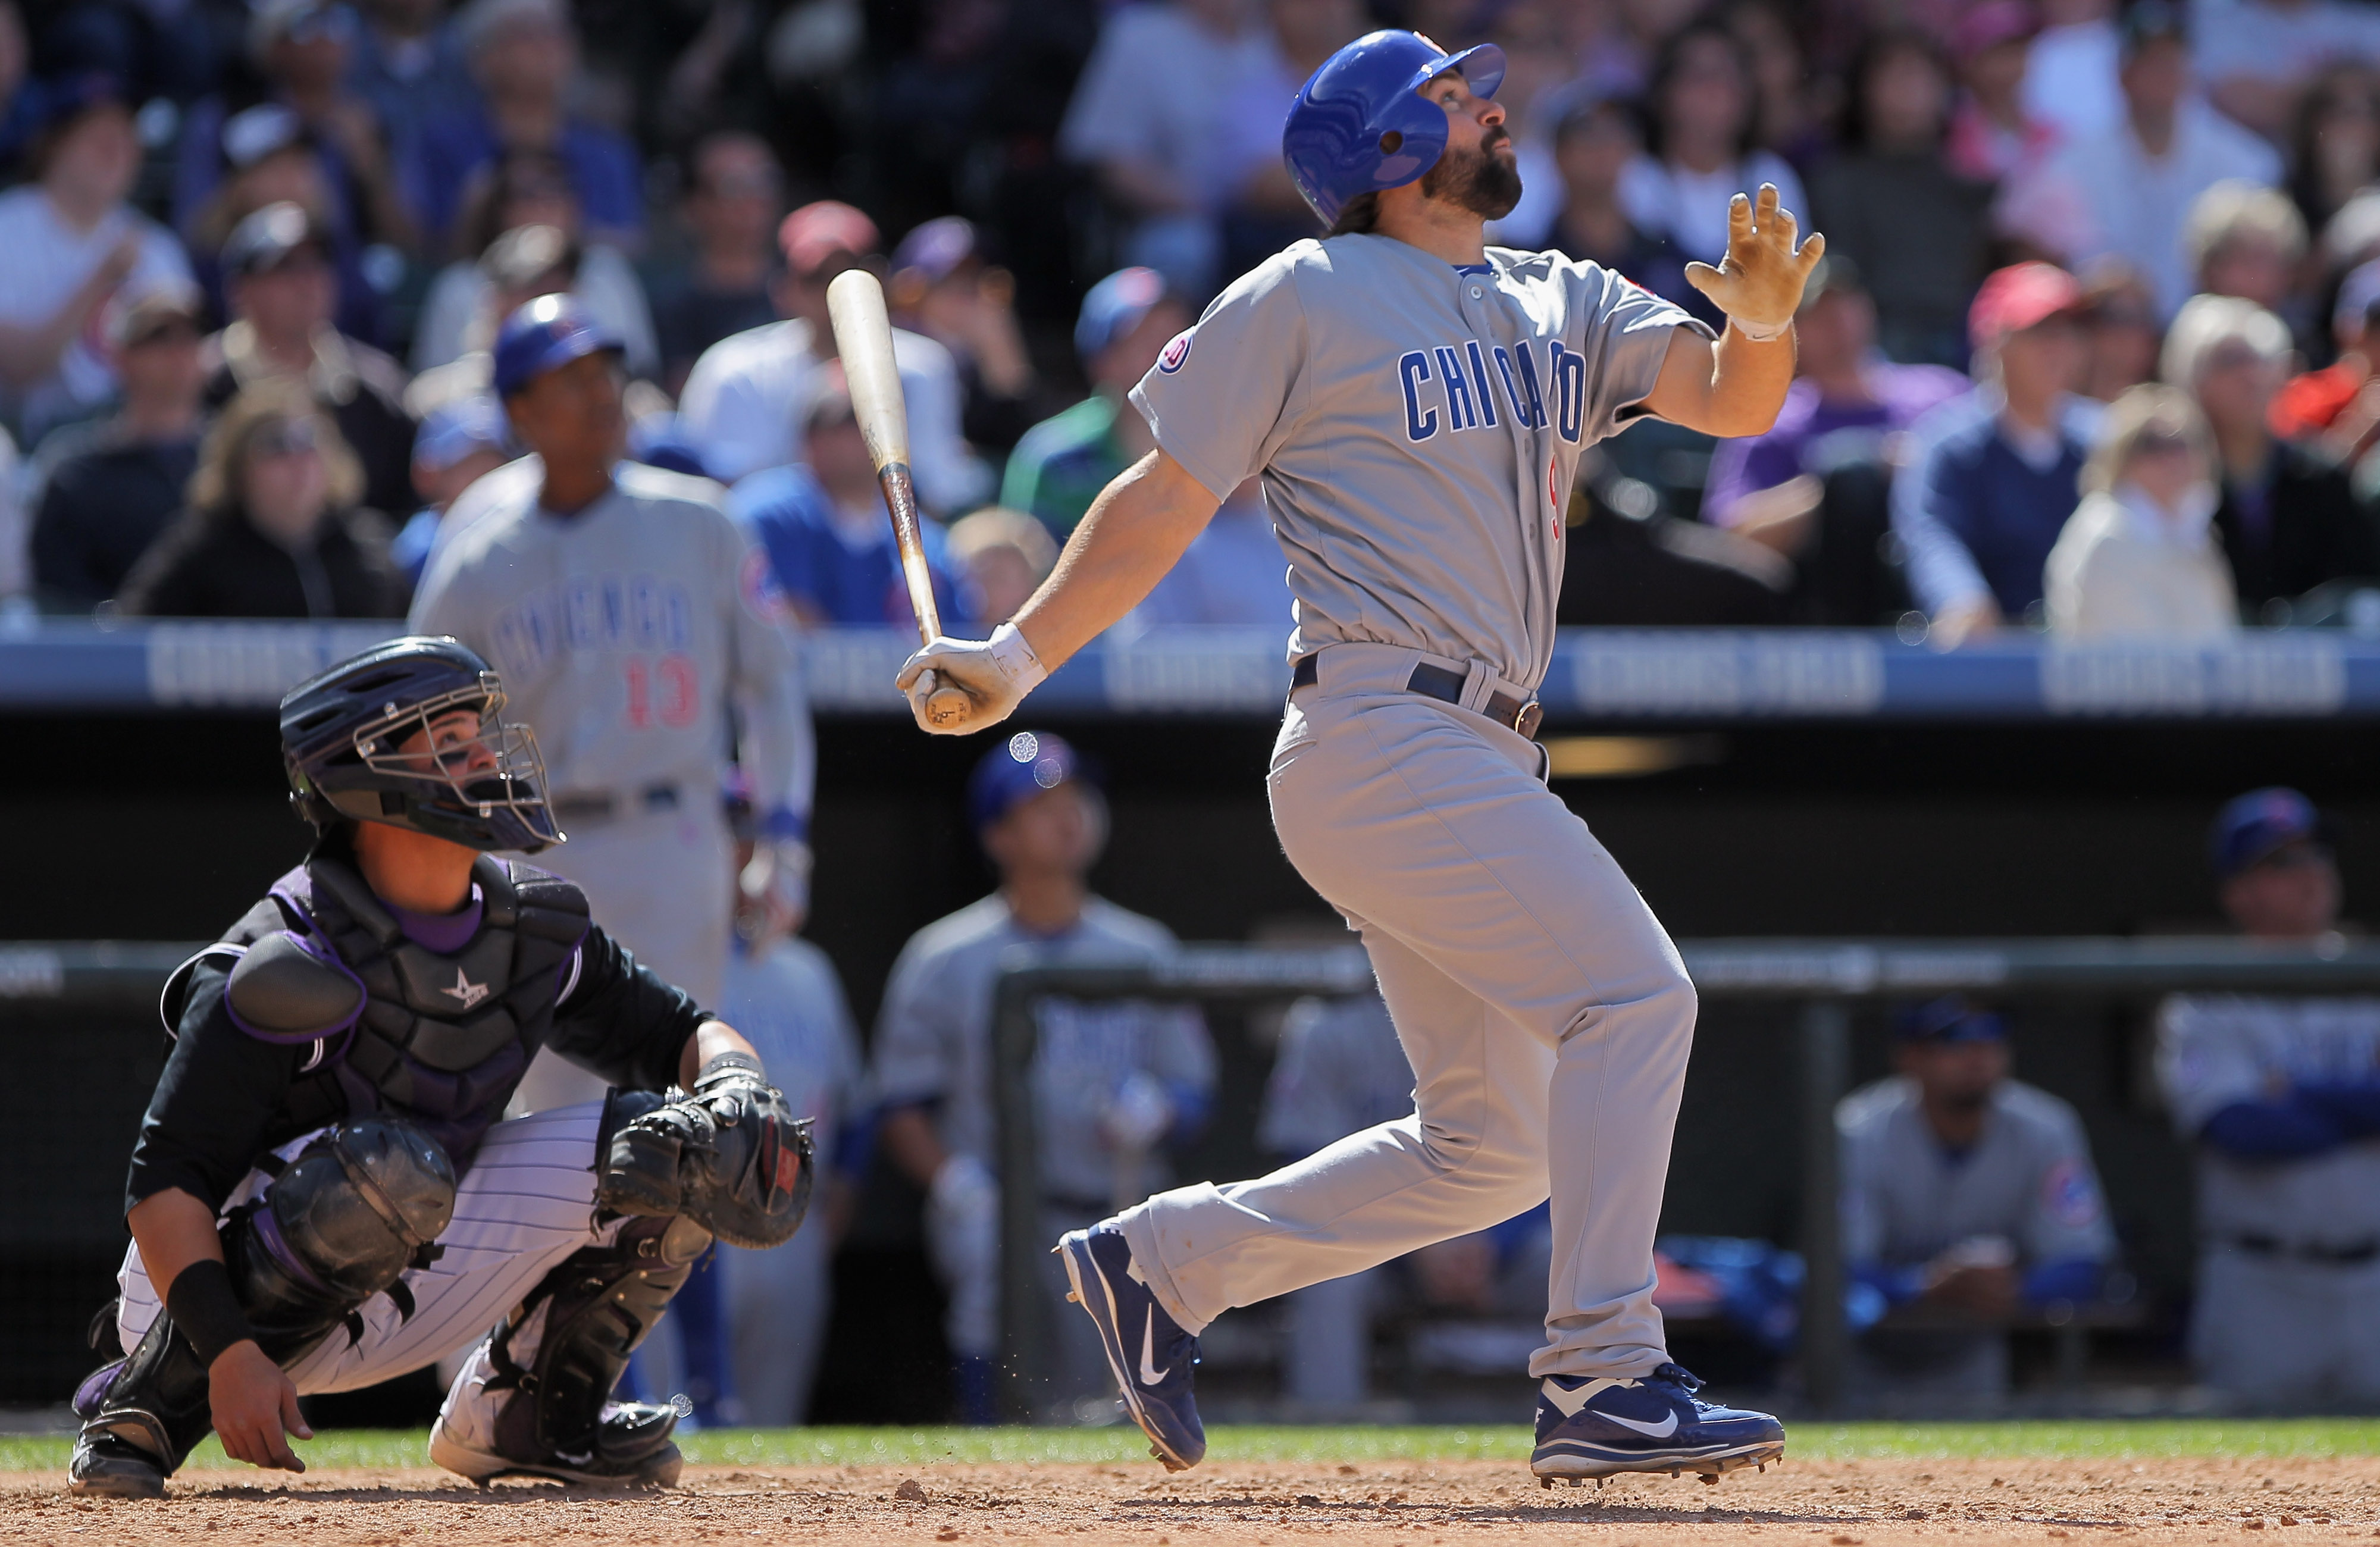 DENVER, CO - APRIL 17:  Blake DeWitt #9 of the Chicago Cubs takes an at bat against the Colorado Rockies at Coors Field on April 17, 2011 in Denver, Colorado.  (Photo by Doug Pensinger/Getty Images)